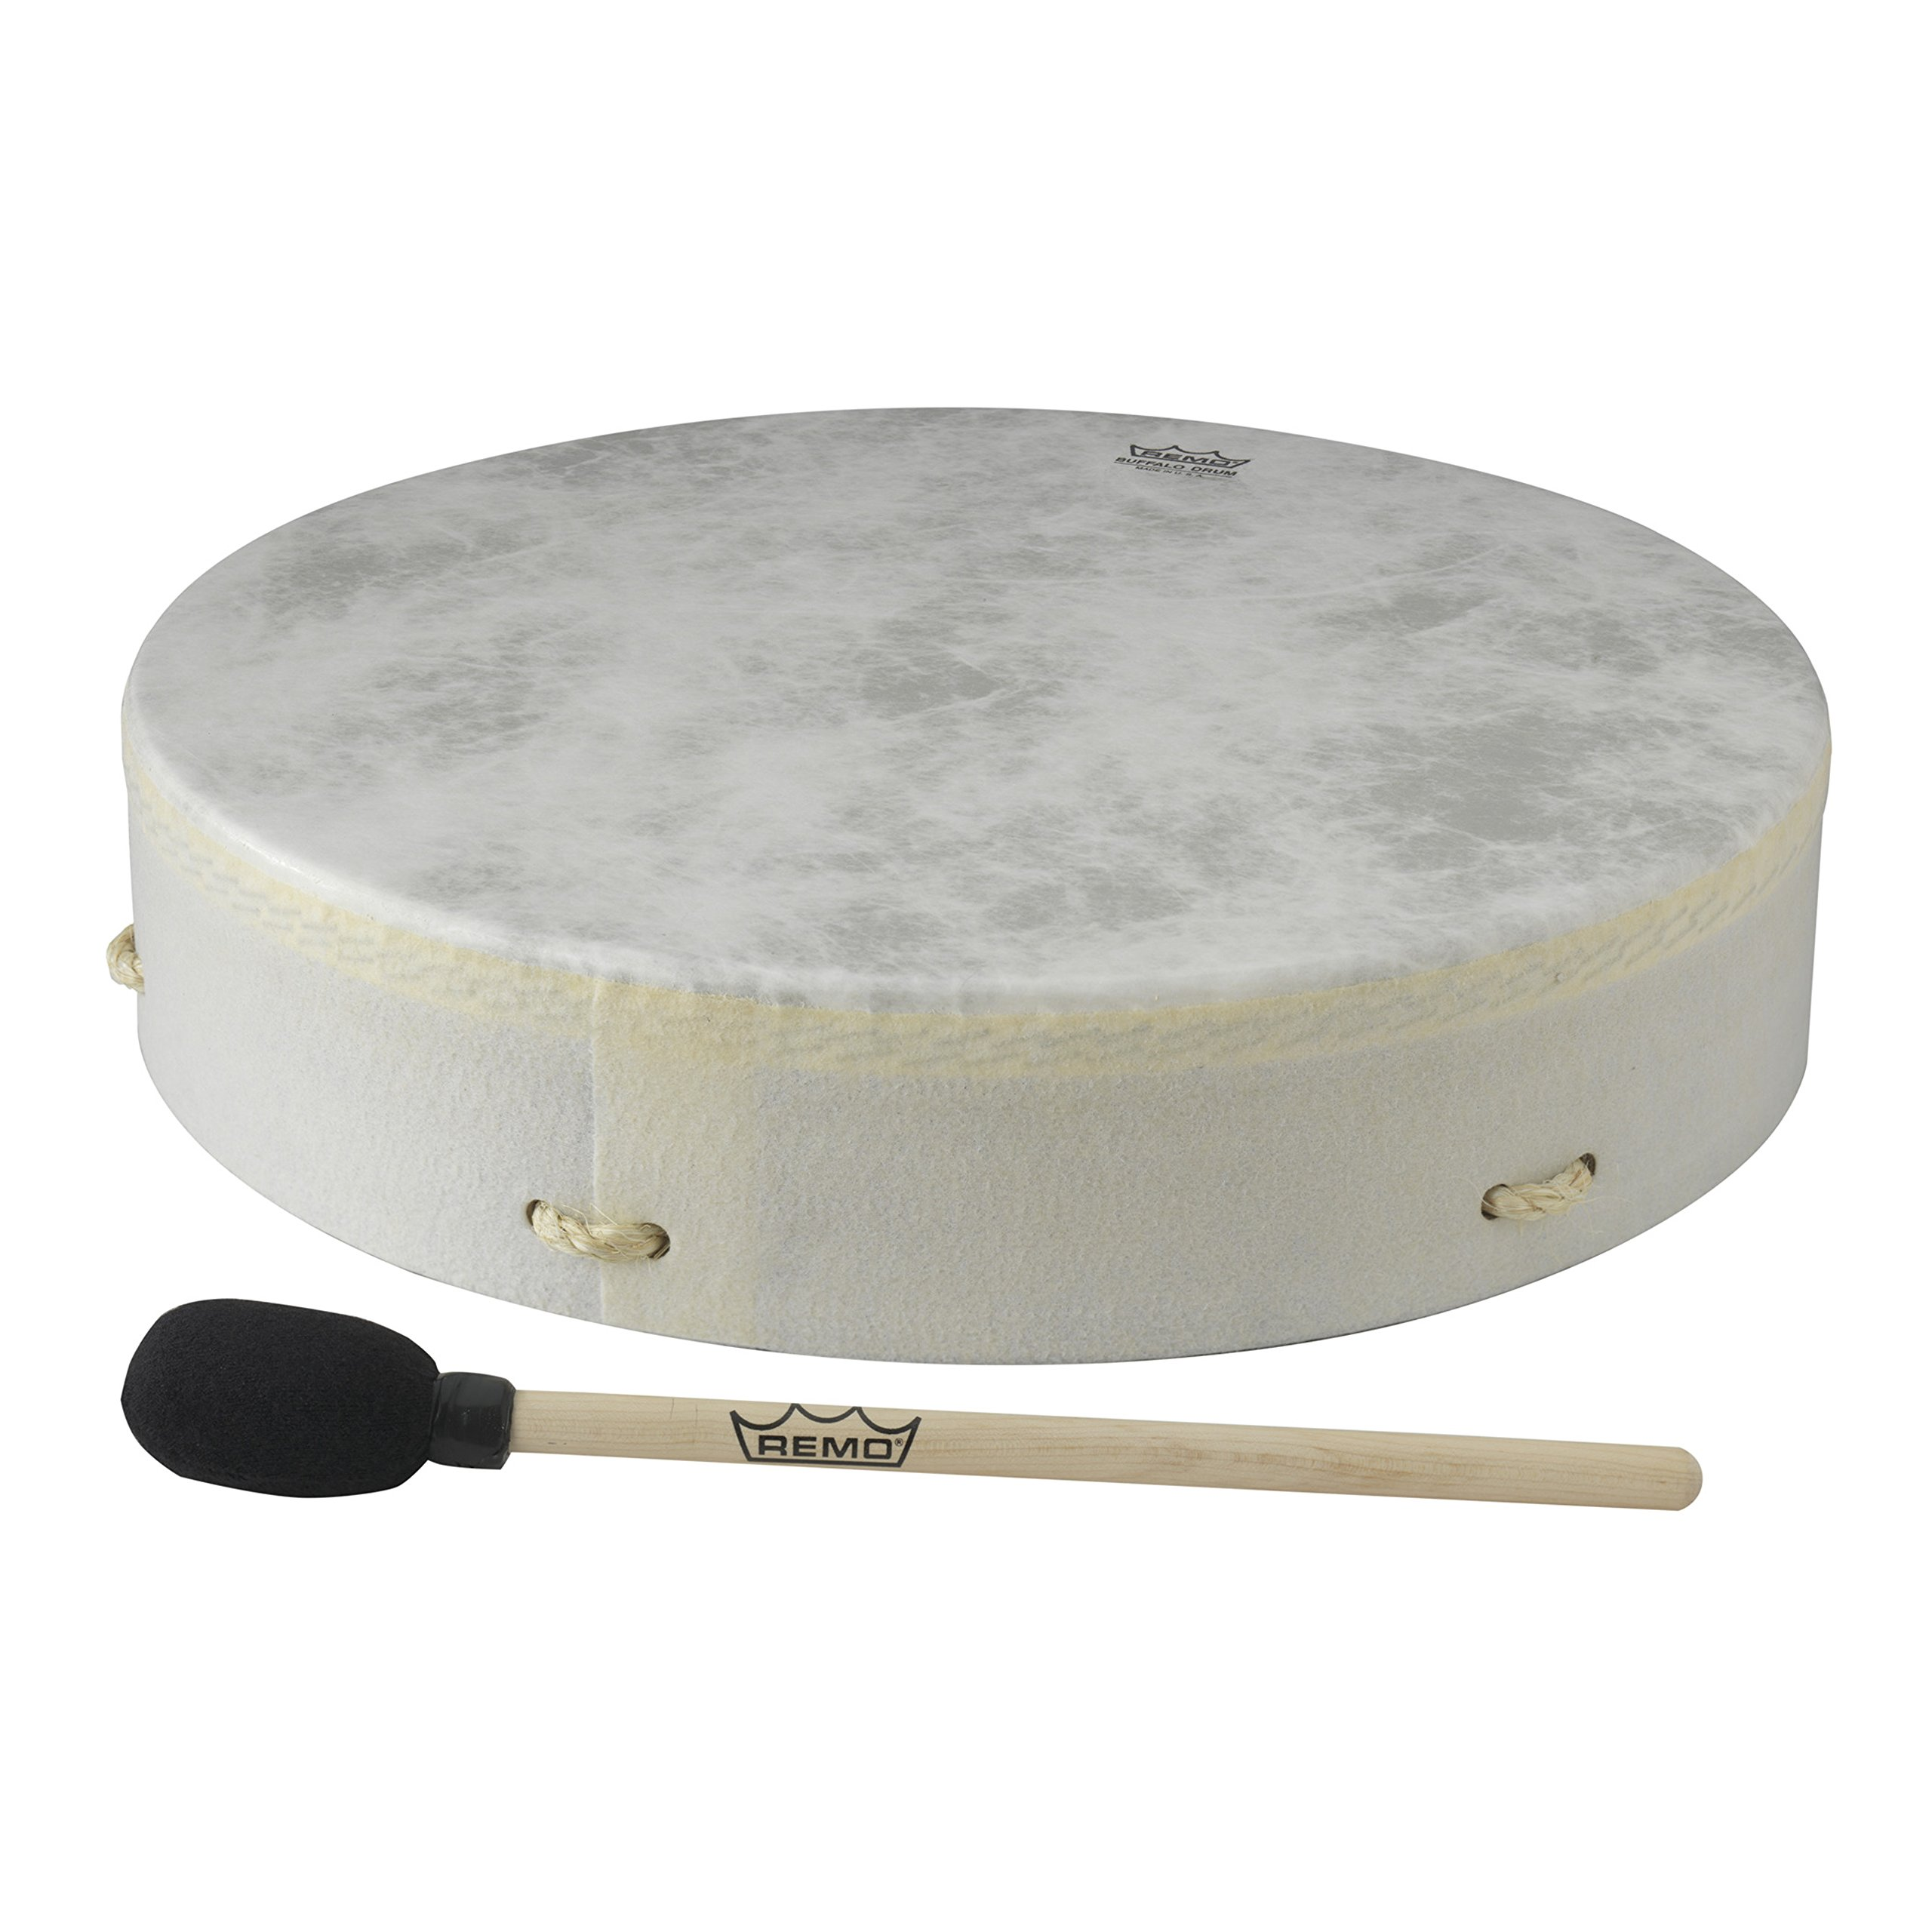 Remo E1-0316-00 Buffalo Drum - Standard, 16'' by Other